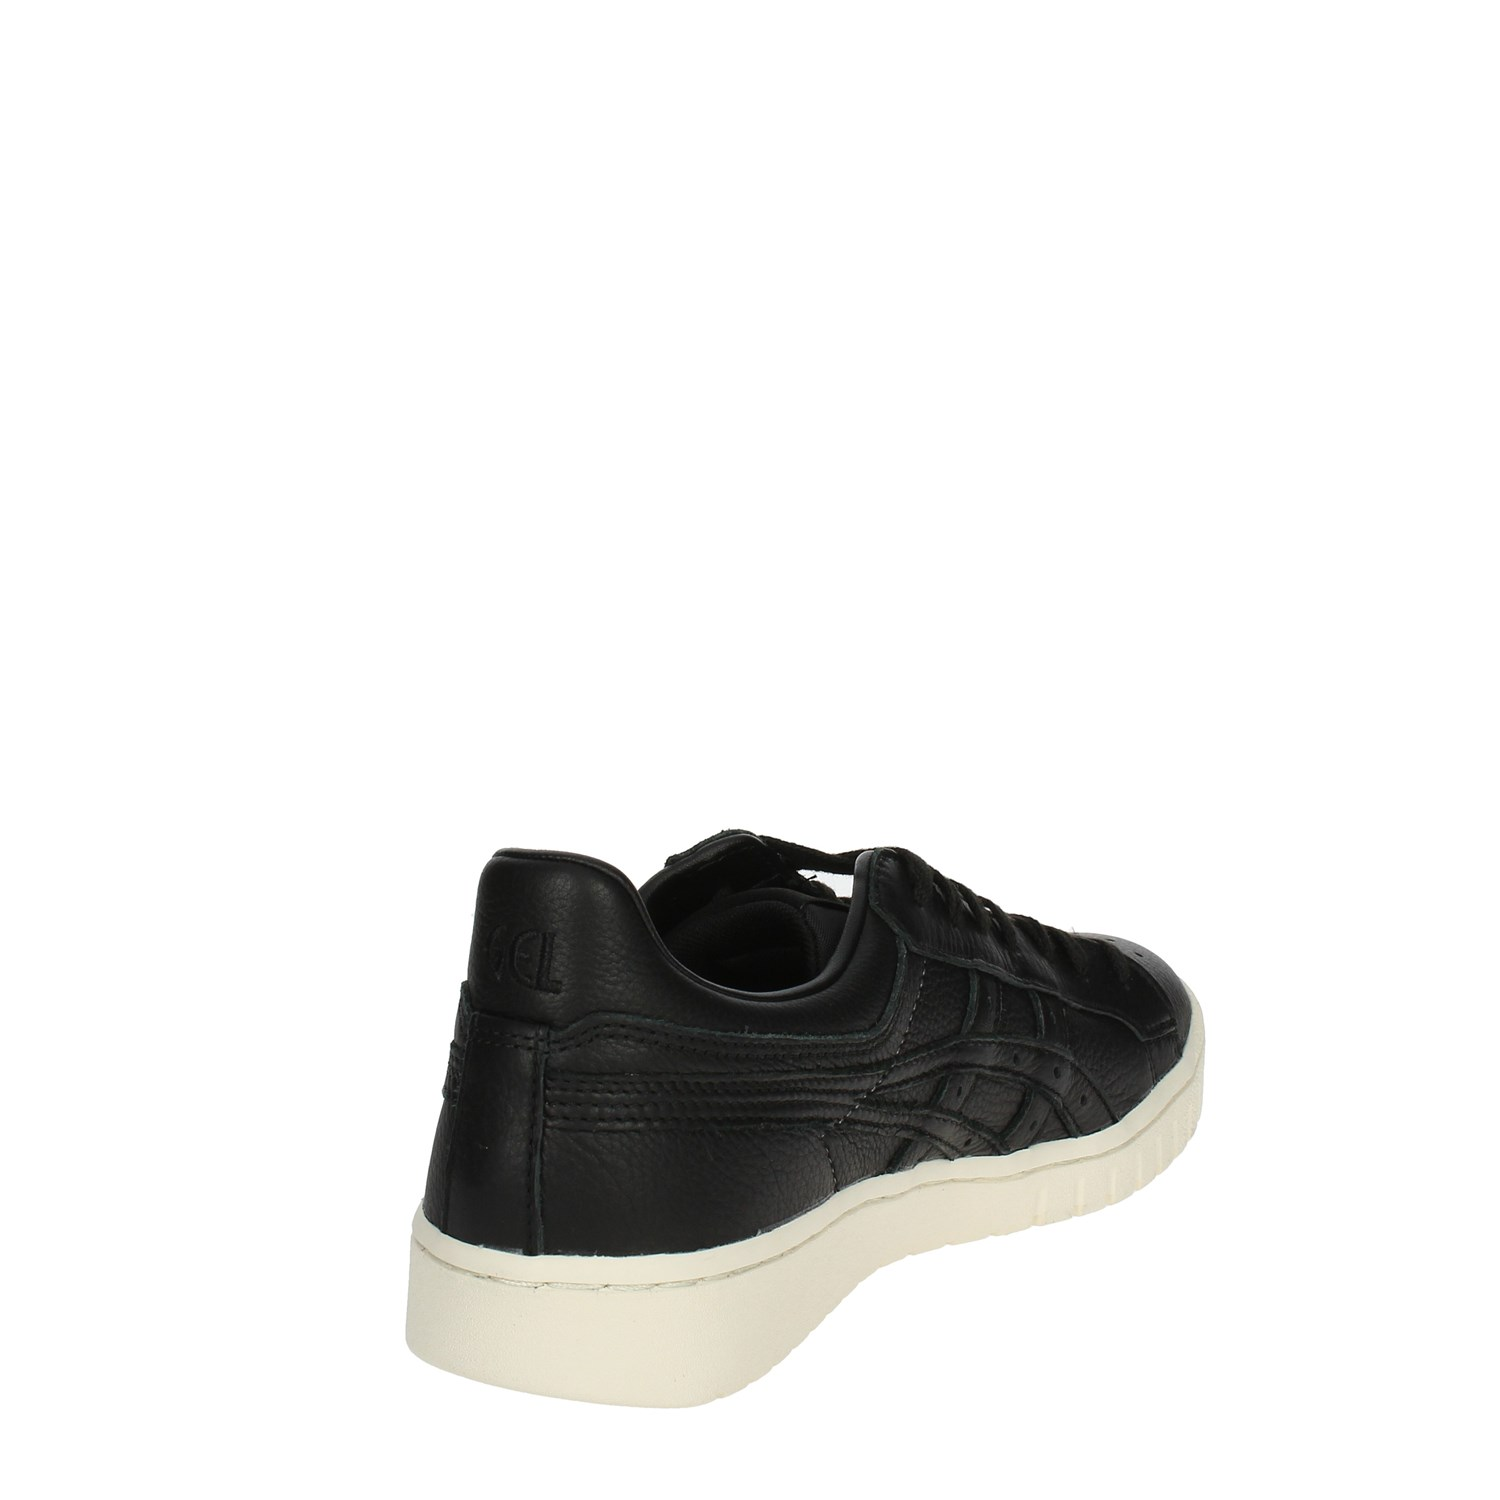 best service 8a2e5 7b5df Details about Asics HL7X0..9090 Black Low Sneakers Man Spring/Summer